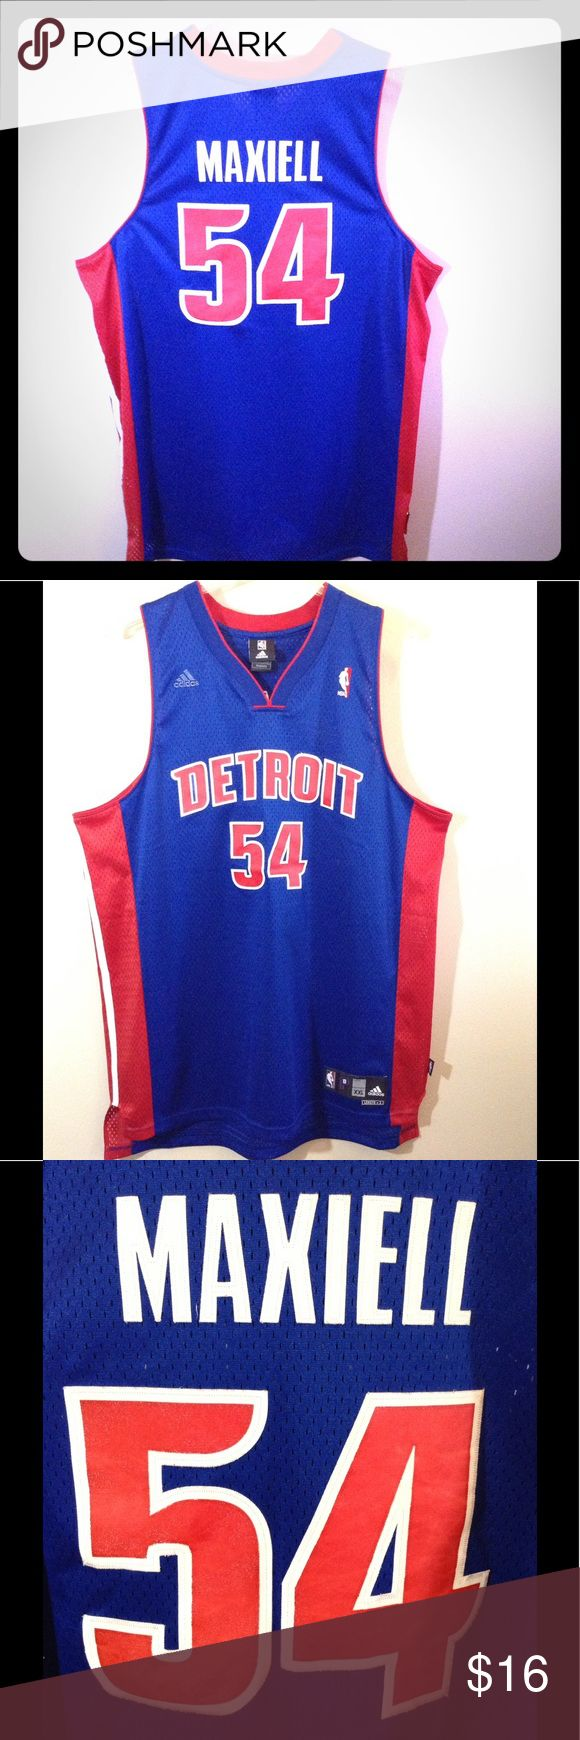 NBA Authentic Pistons Jason Maxiell Jersey Jersey is a authentic NBA joined with adidas jersey. This jersey is a throwback from the Pistons, size XXL, blue, red and white in color. This is official NBA gear, No rips, no tears, no stains in good condition. adidas Shirts